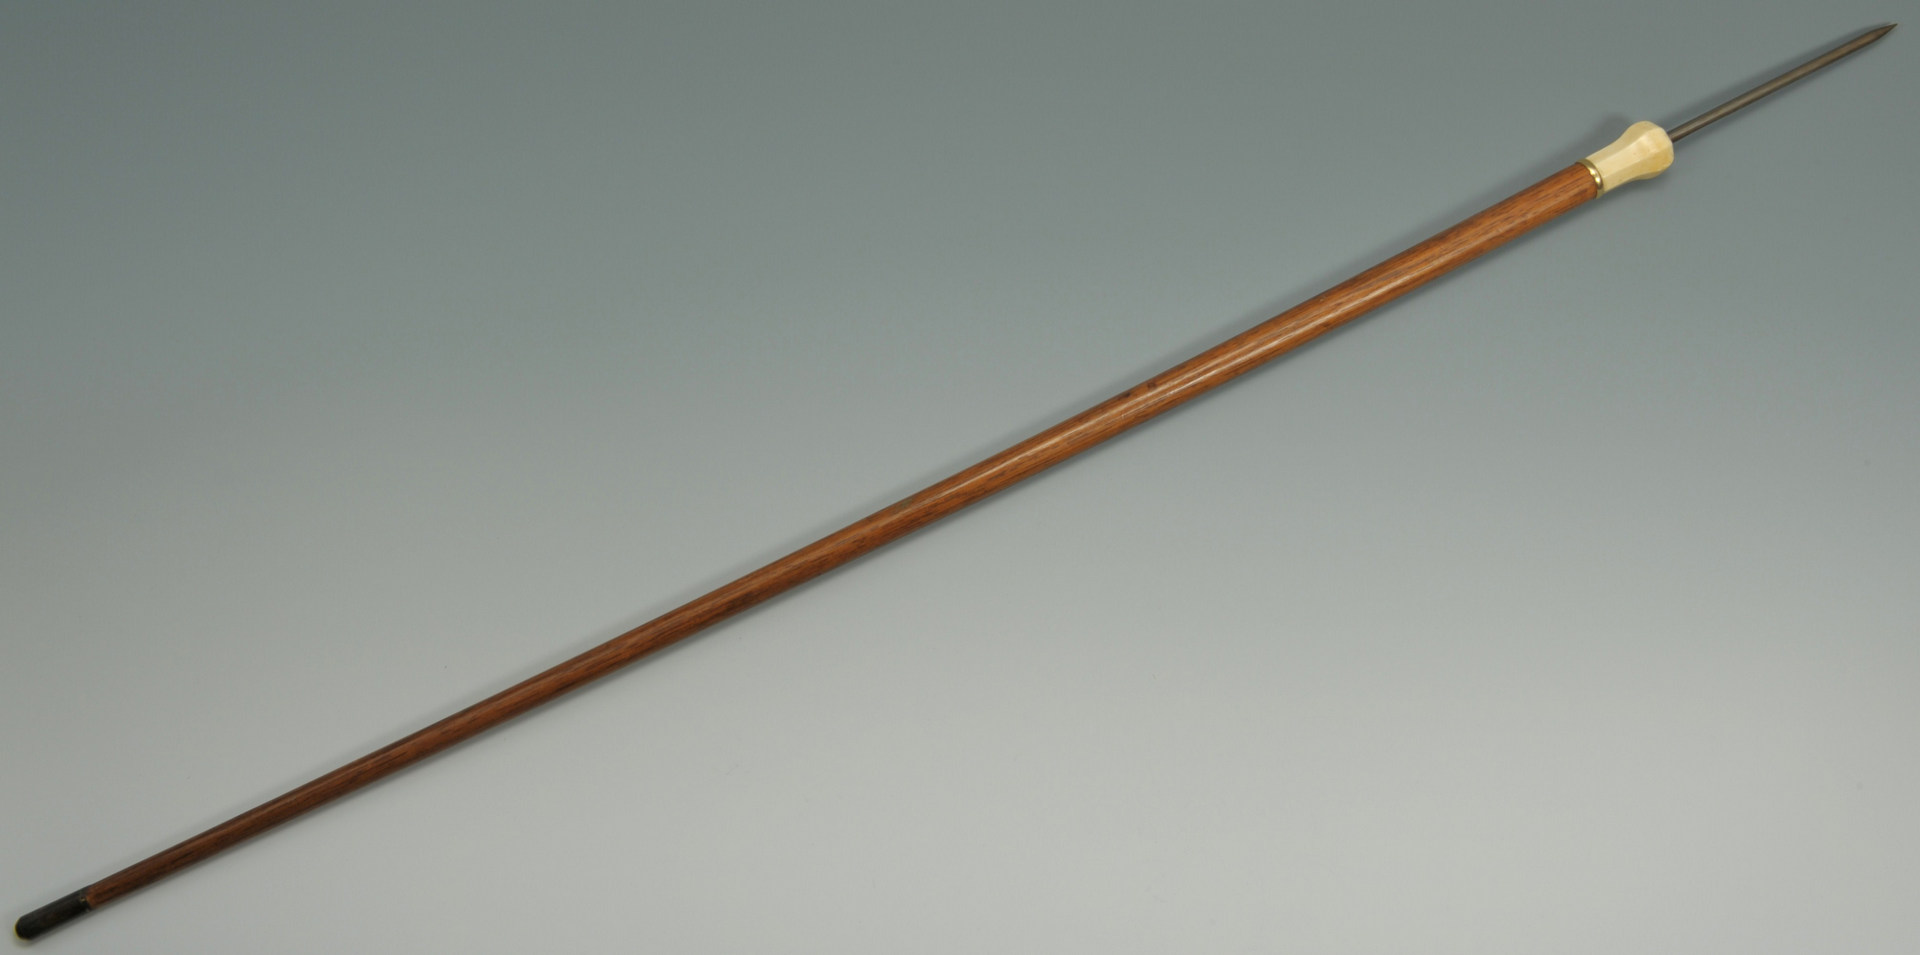 Lot 515: Rare Flick Stick Cane with Ivory Handle